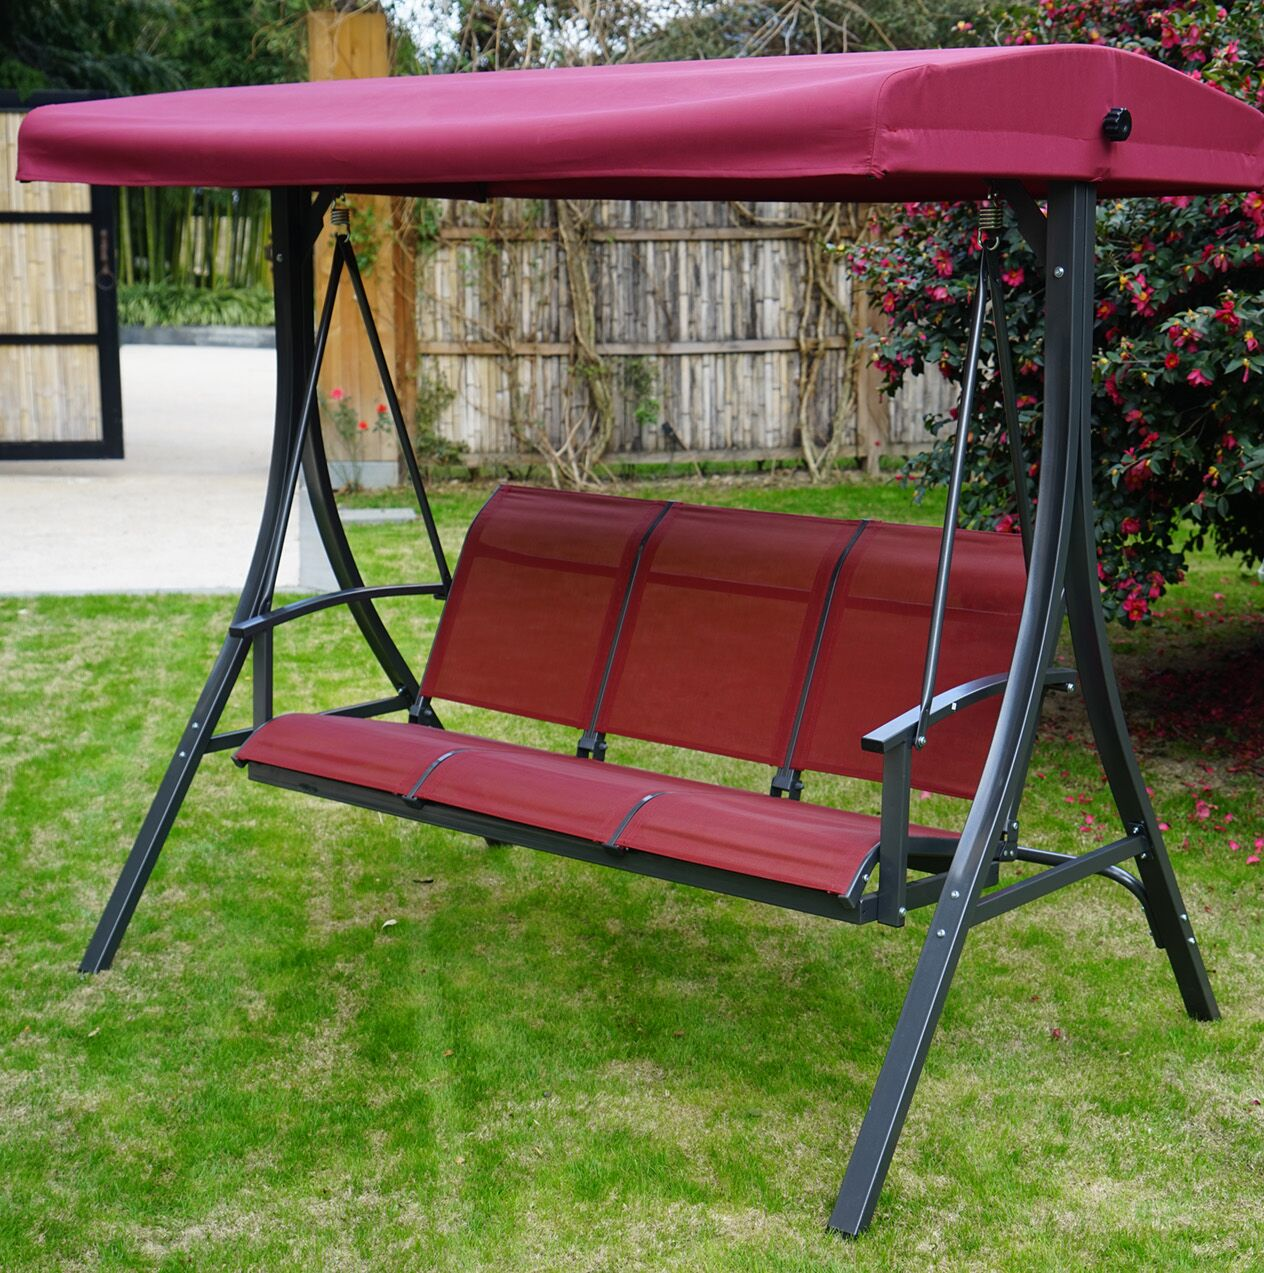 Otteridge Patio Porch Swing with Stand Fabric: Red